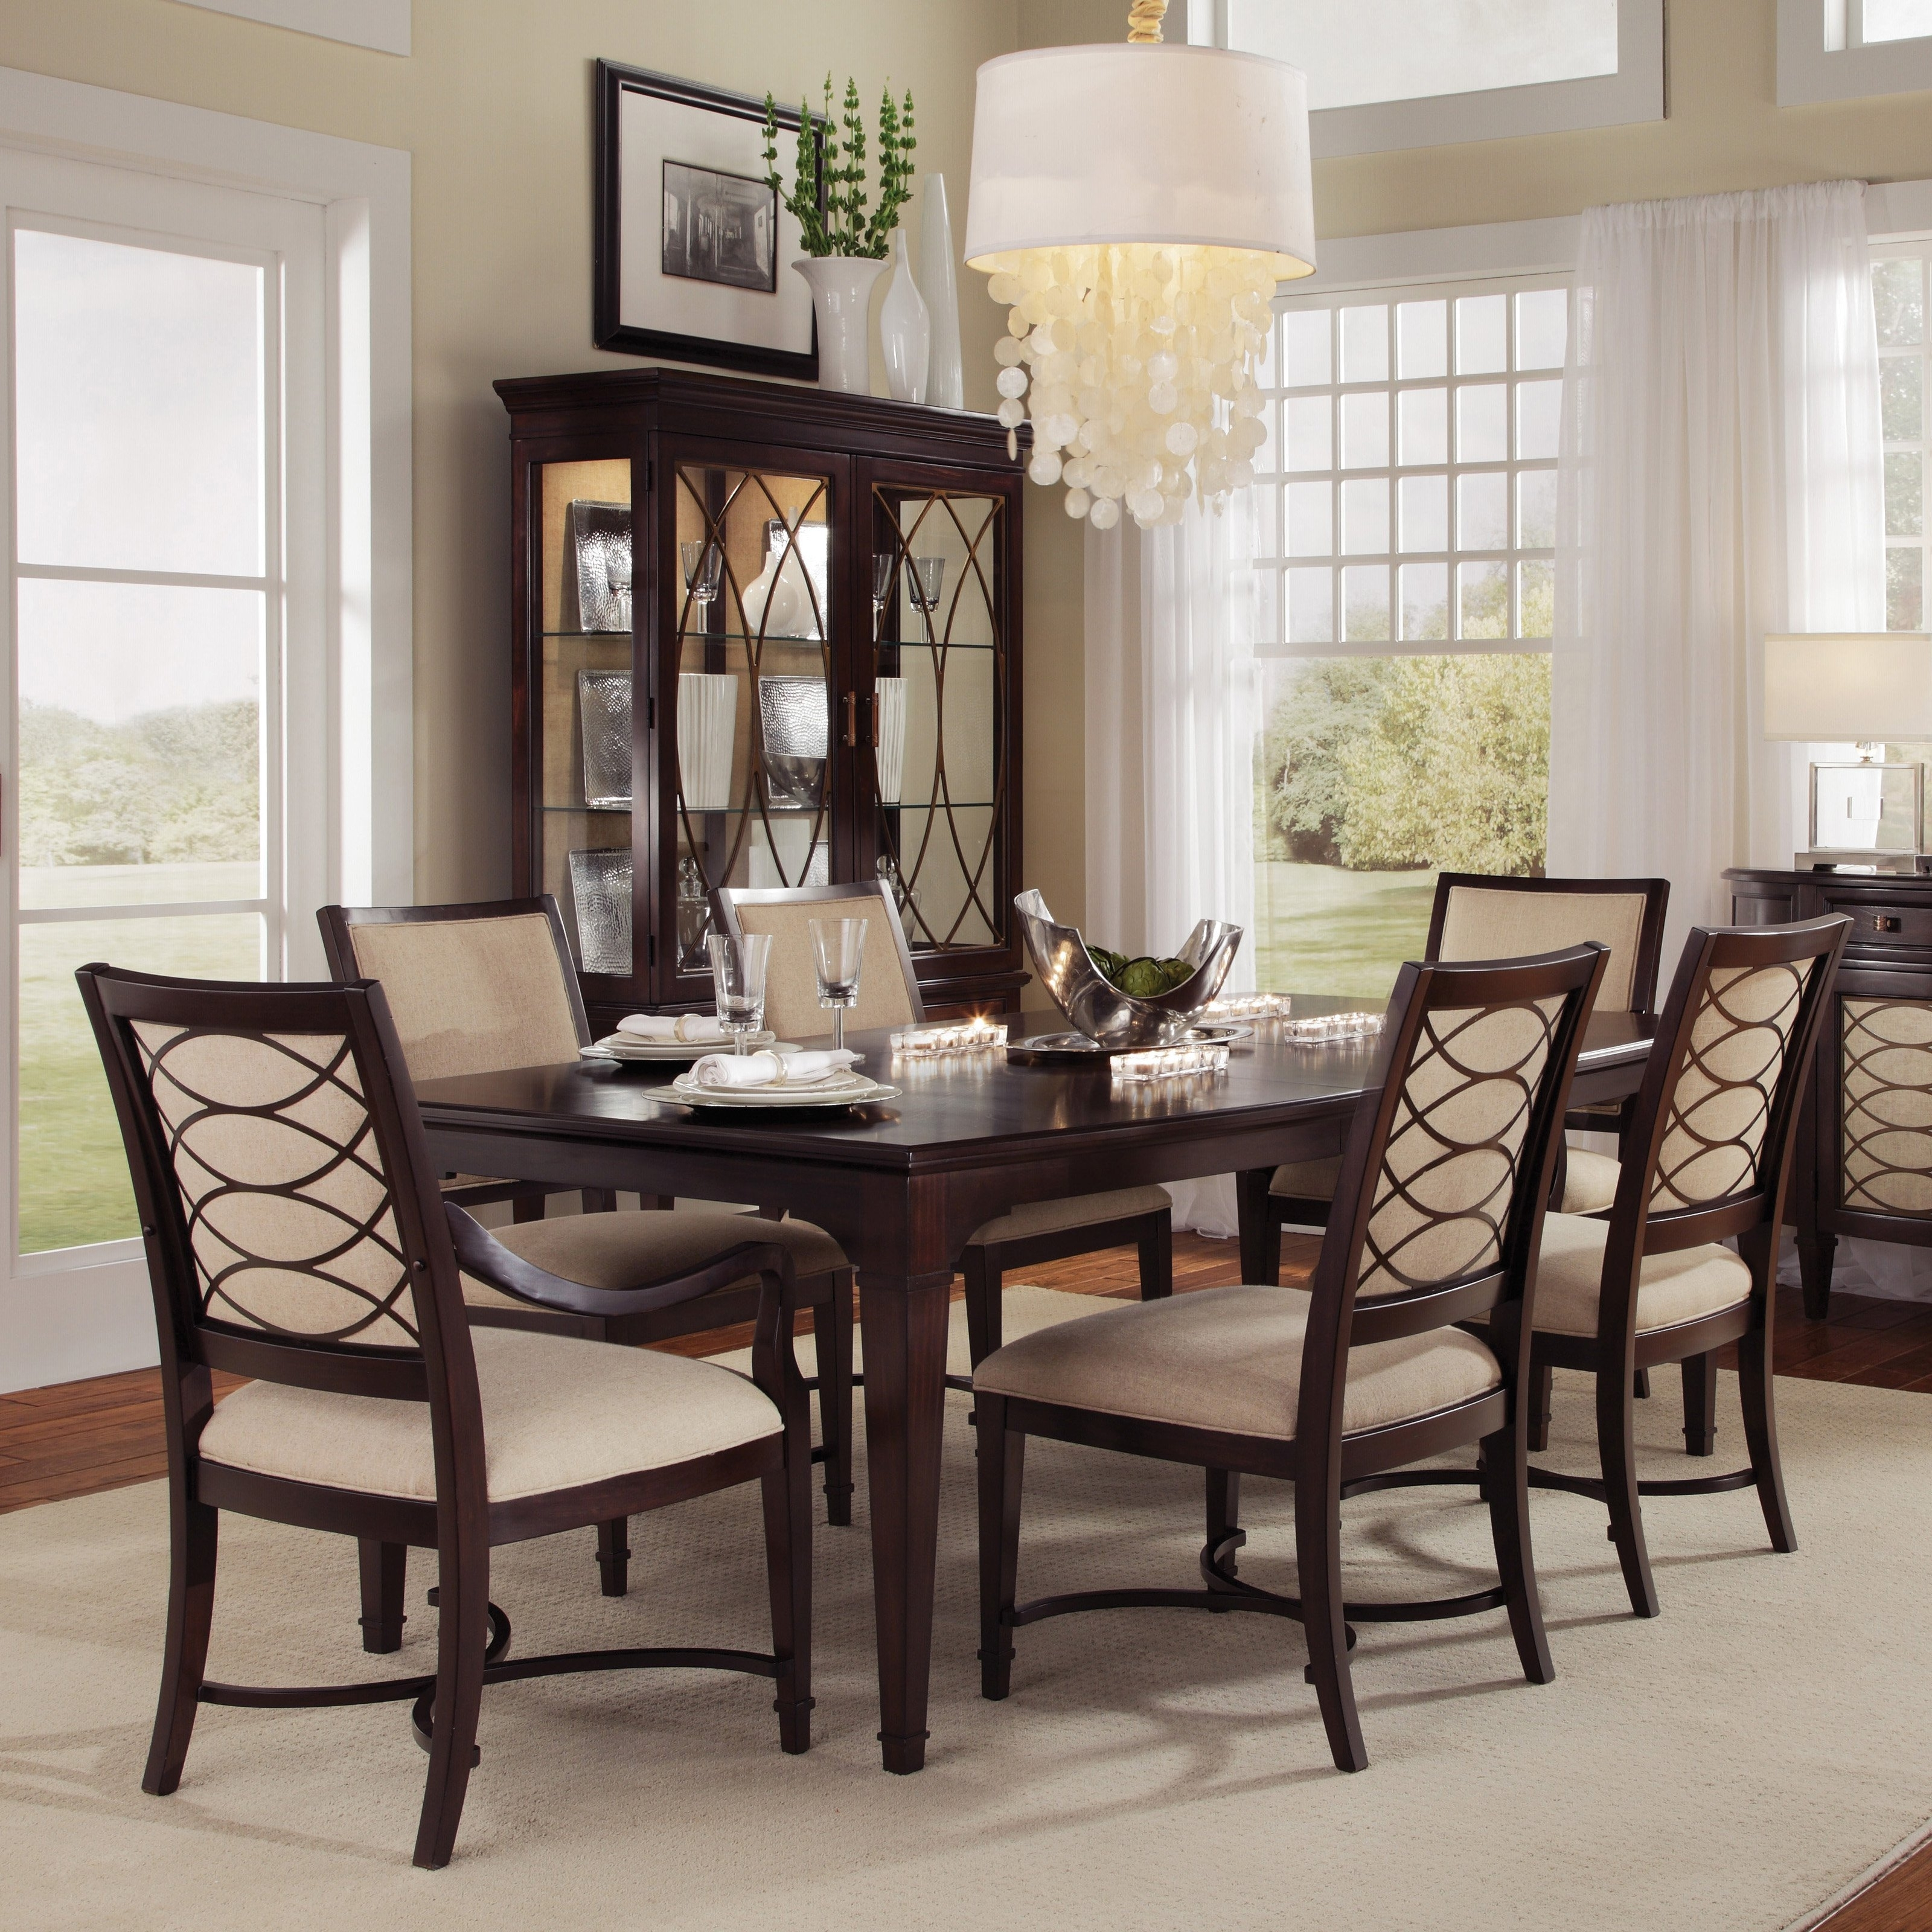 Dark Wood Dining Room Furniture With Most Popular Dark Wood Dining Table And Chairs Hot Pink Dining Chairs (Gallery 8 of 25)